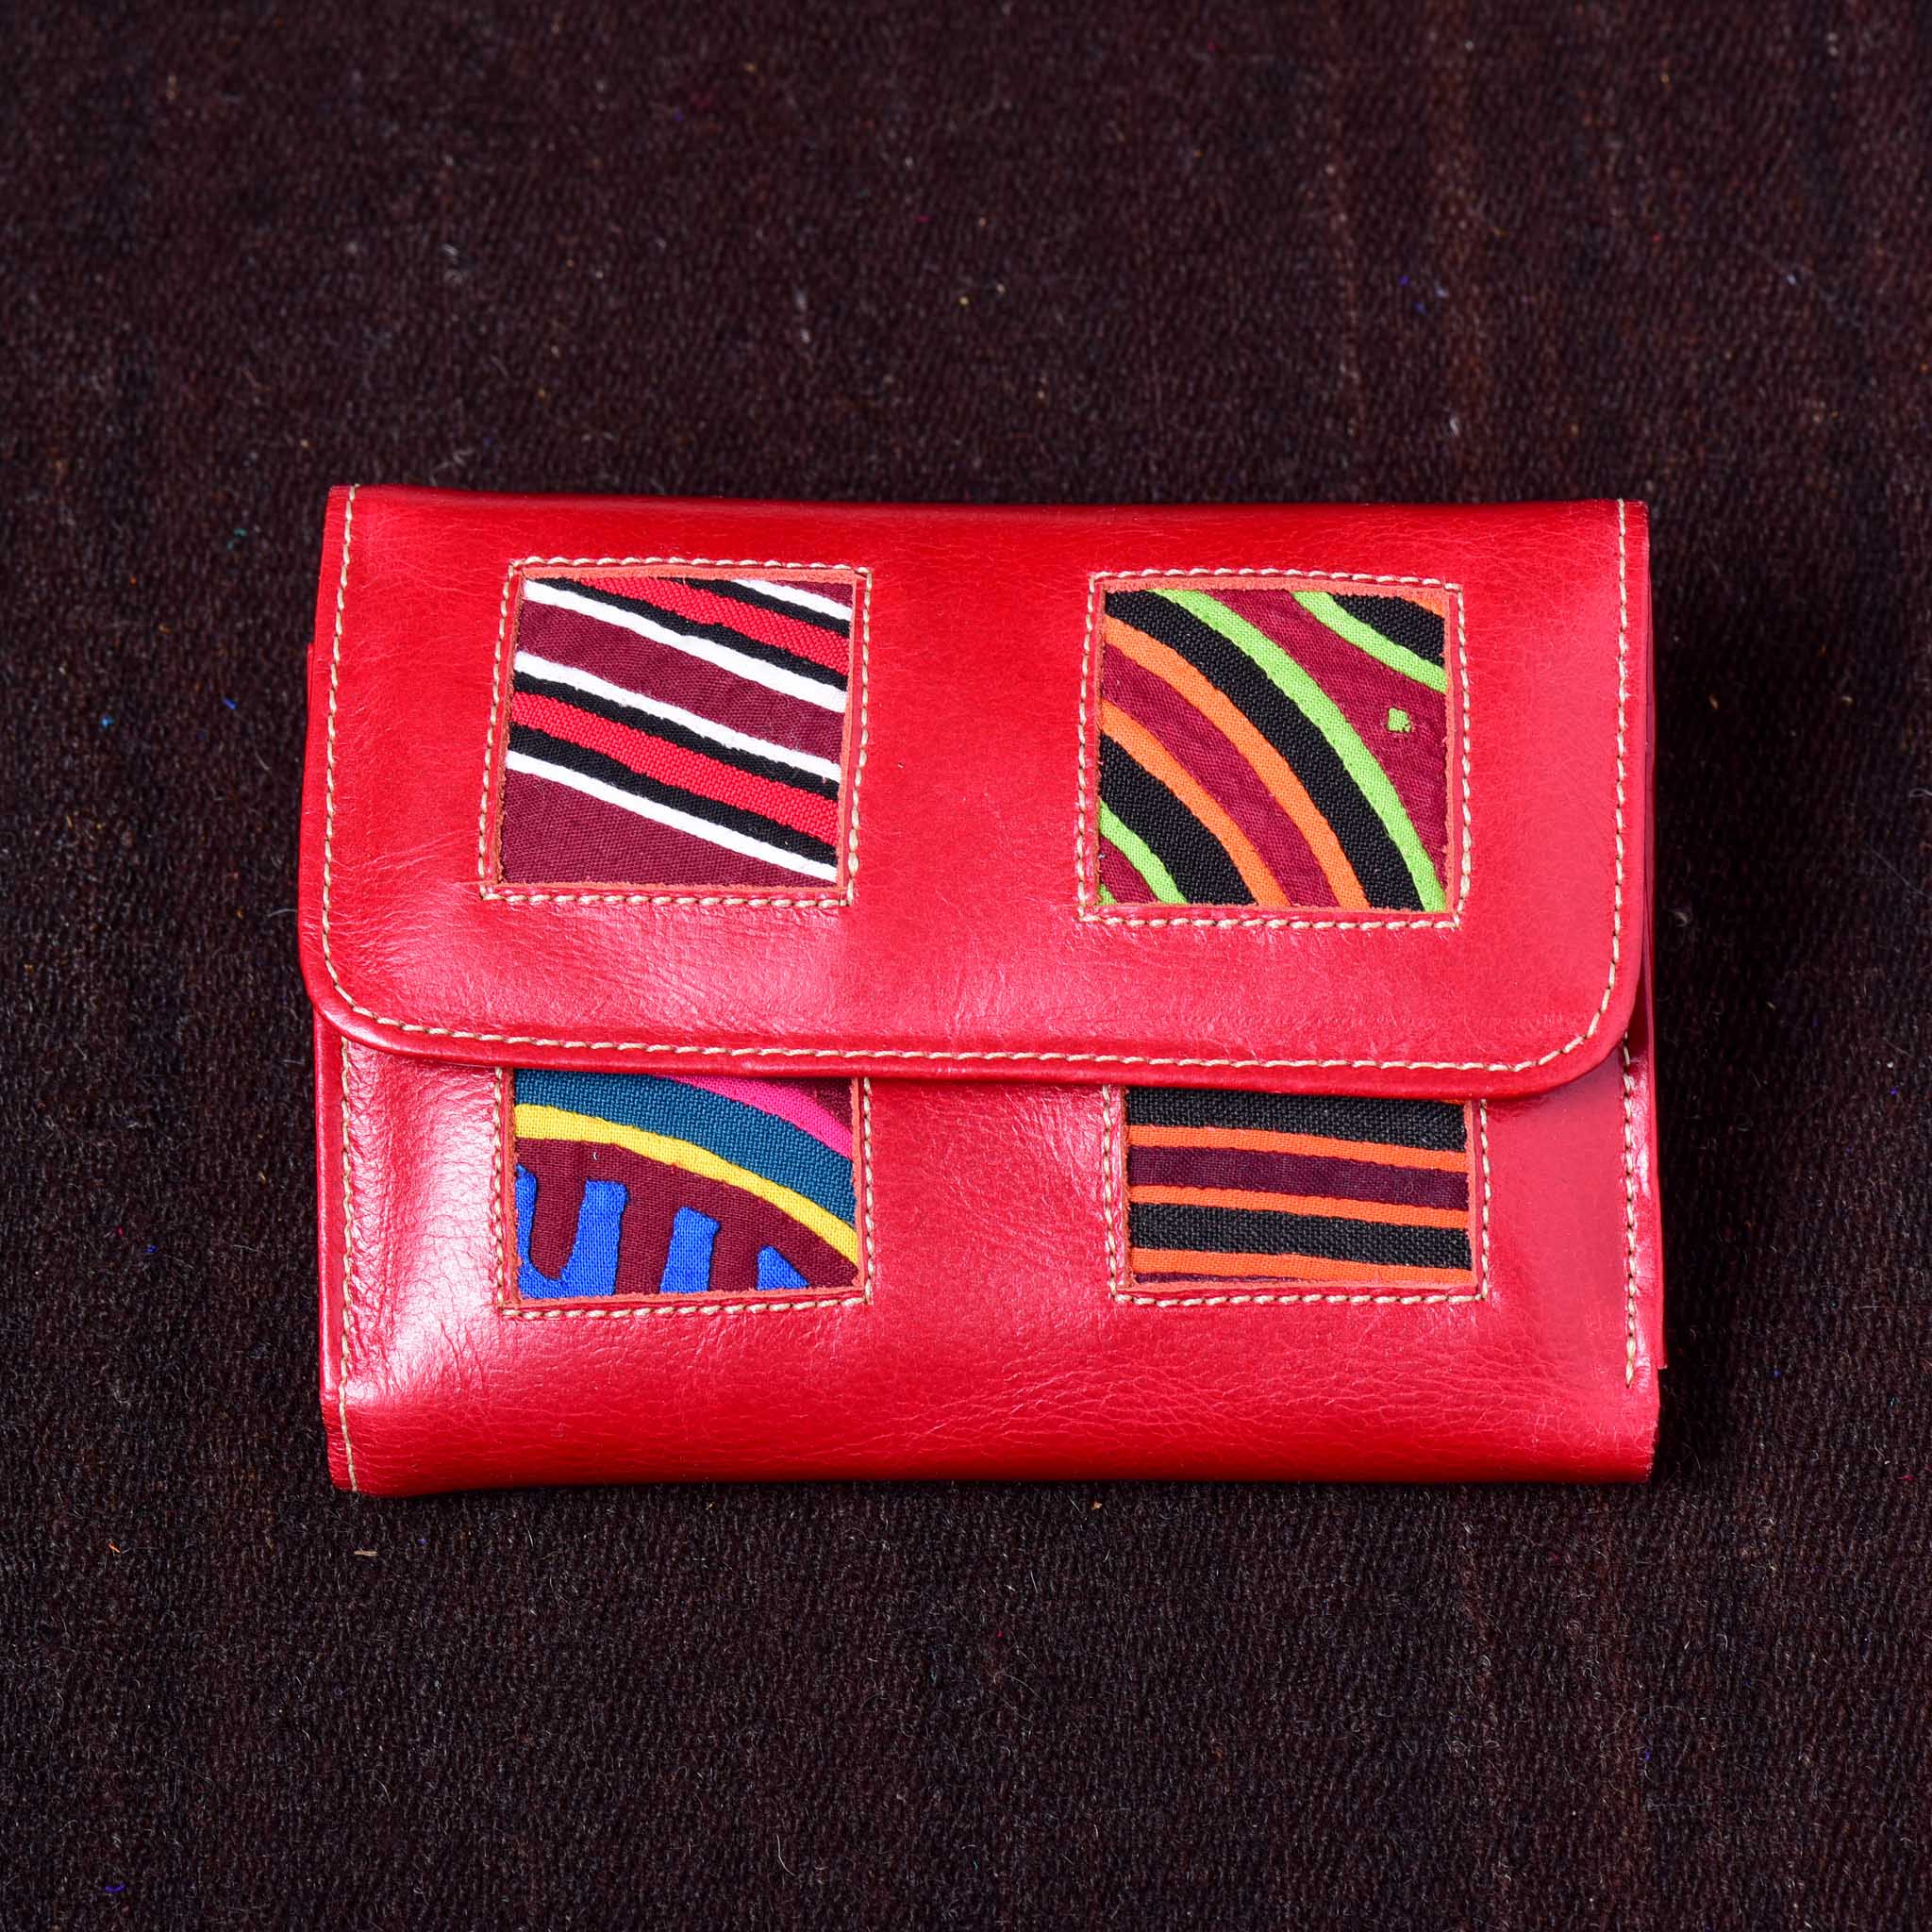 Billetera - Kuna Mola & Leather Purse